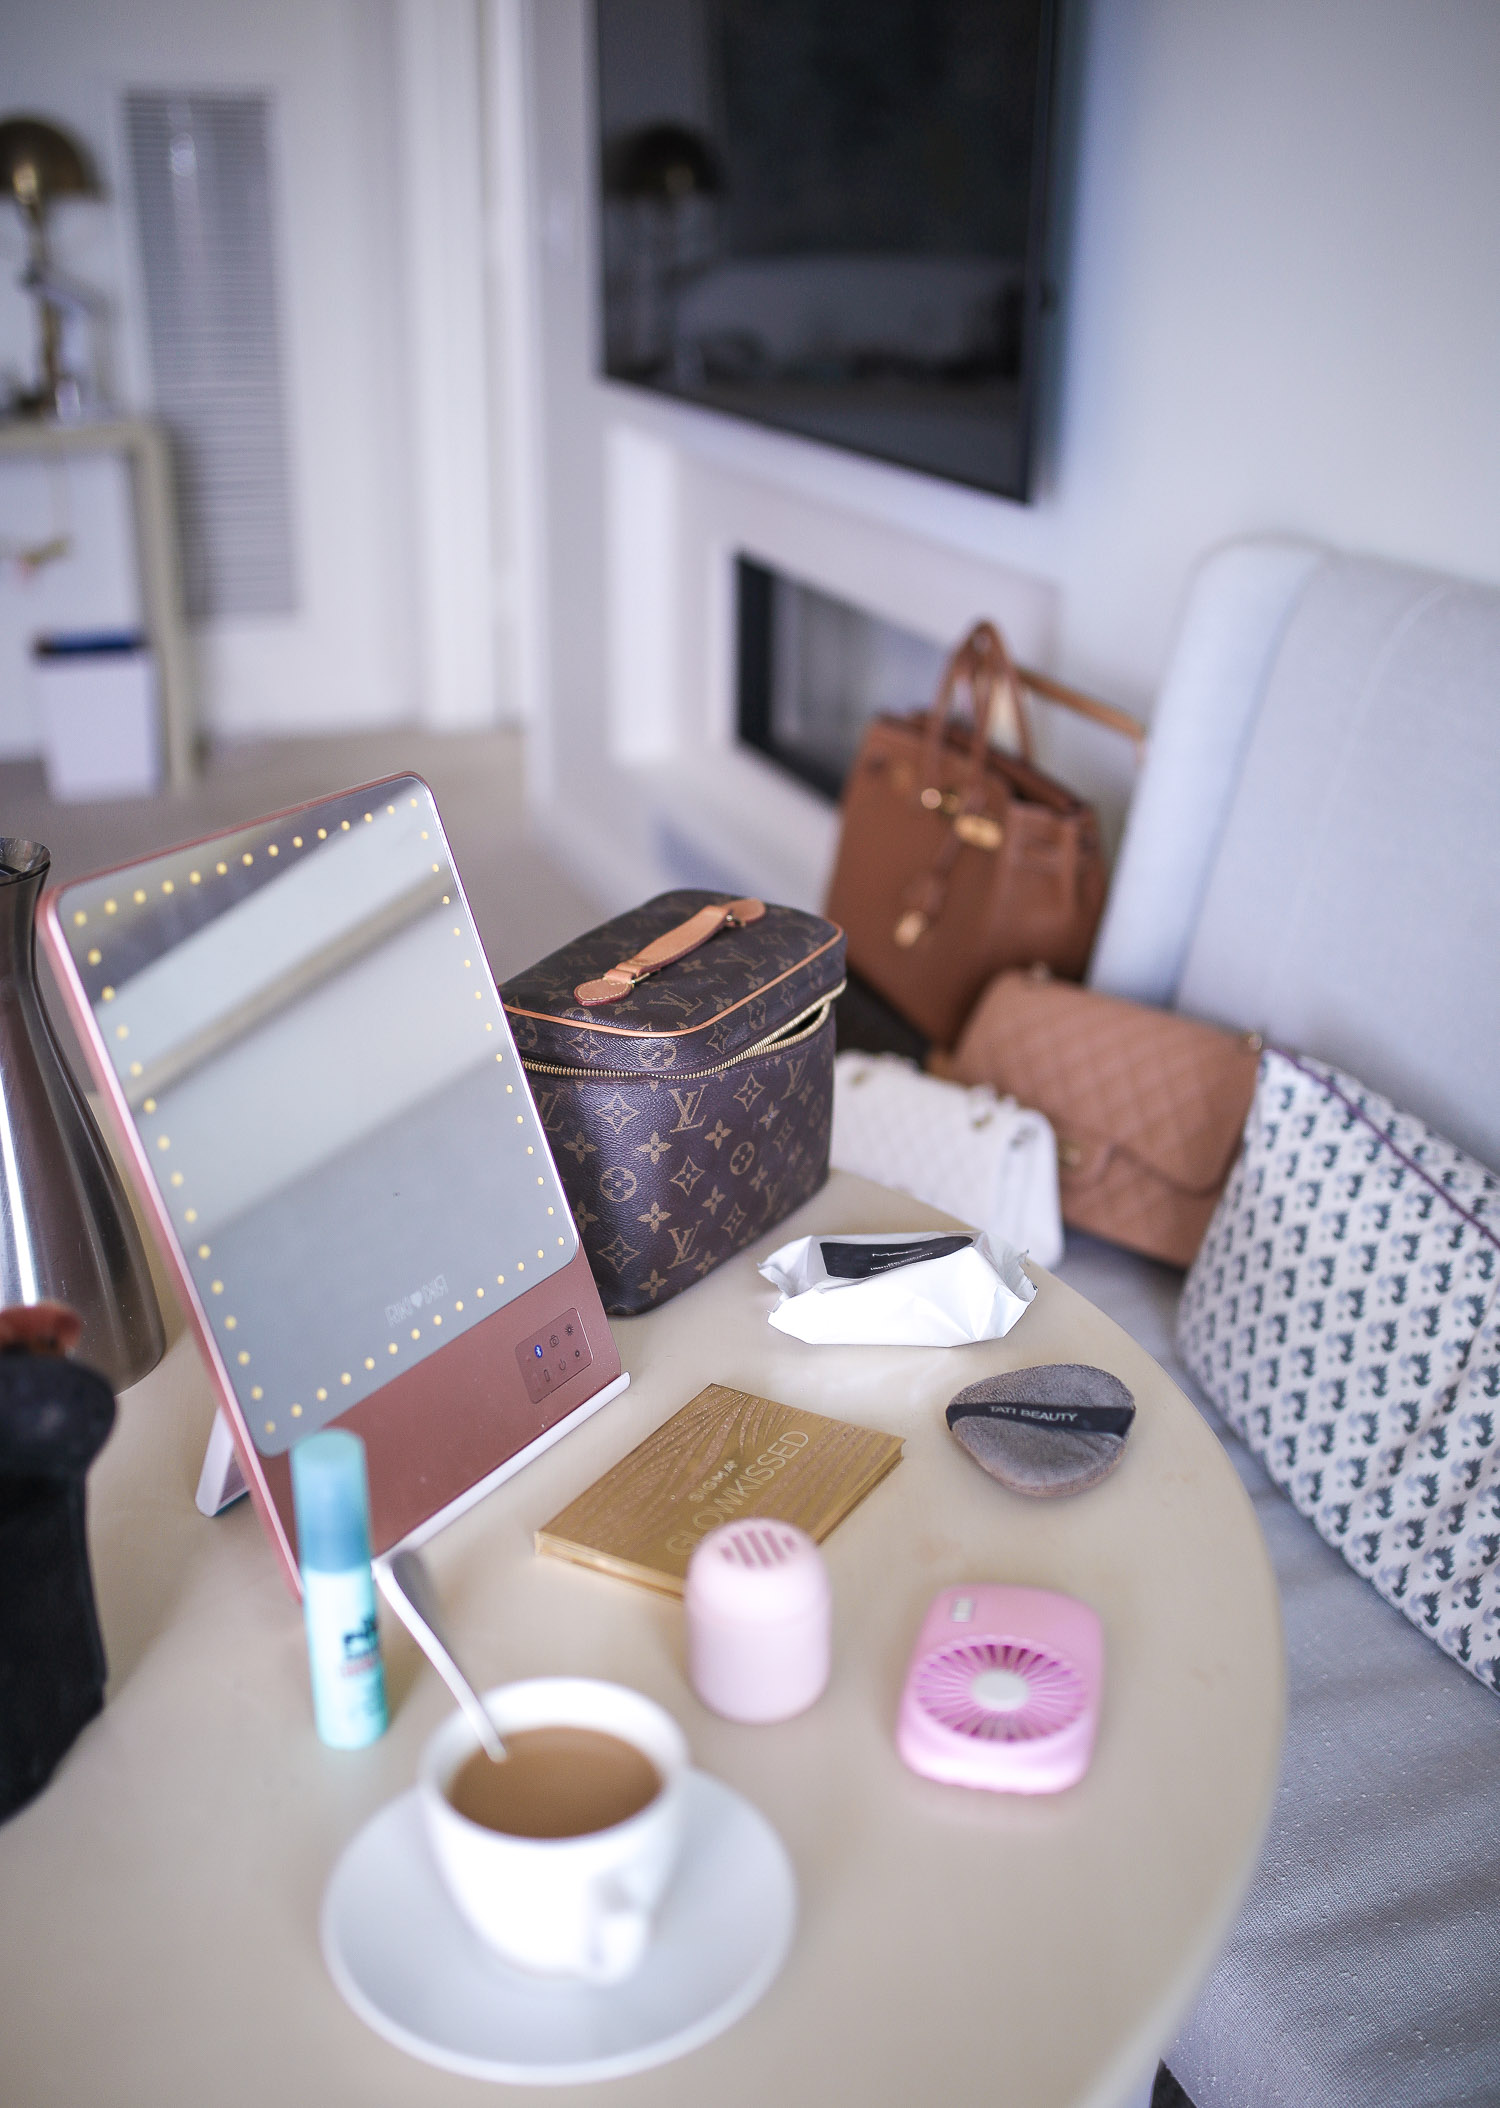 Riki Size Travel Mirror, pink travel fan makeup, beauty sponge holder travel amazon, Louis Vuitton Nice Case, Emily Gemma | Travel Hacks by popular life and style blog, The Sweetest Thing: image of a makeup mirror, Louis Vuitton makeup bag, portable fan, and cup of coffee.